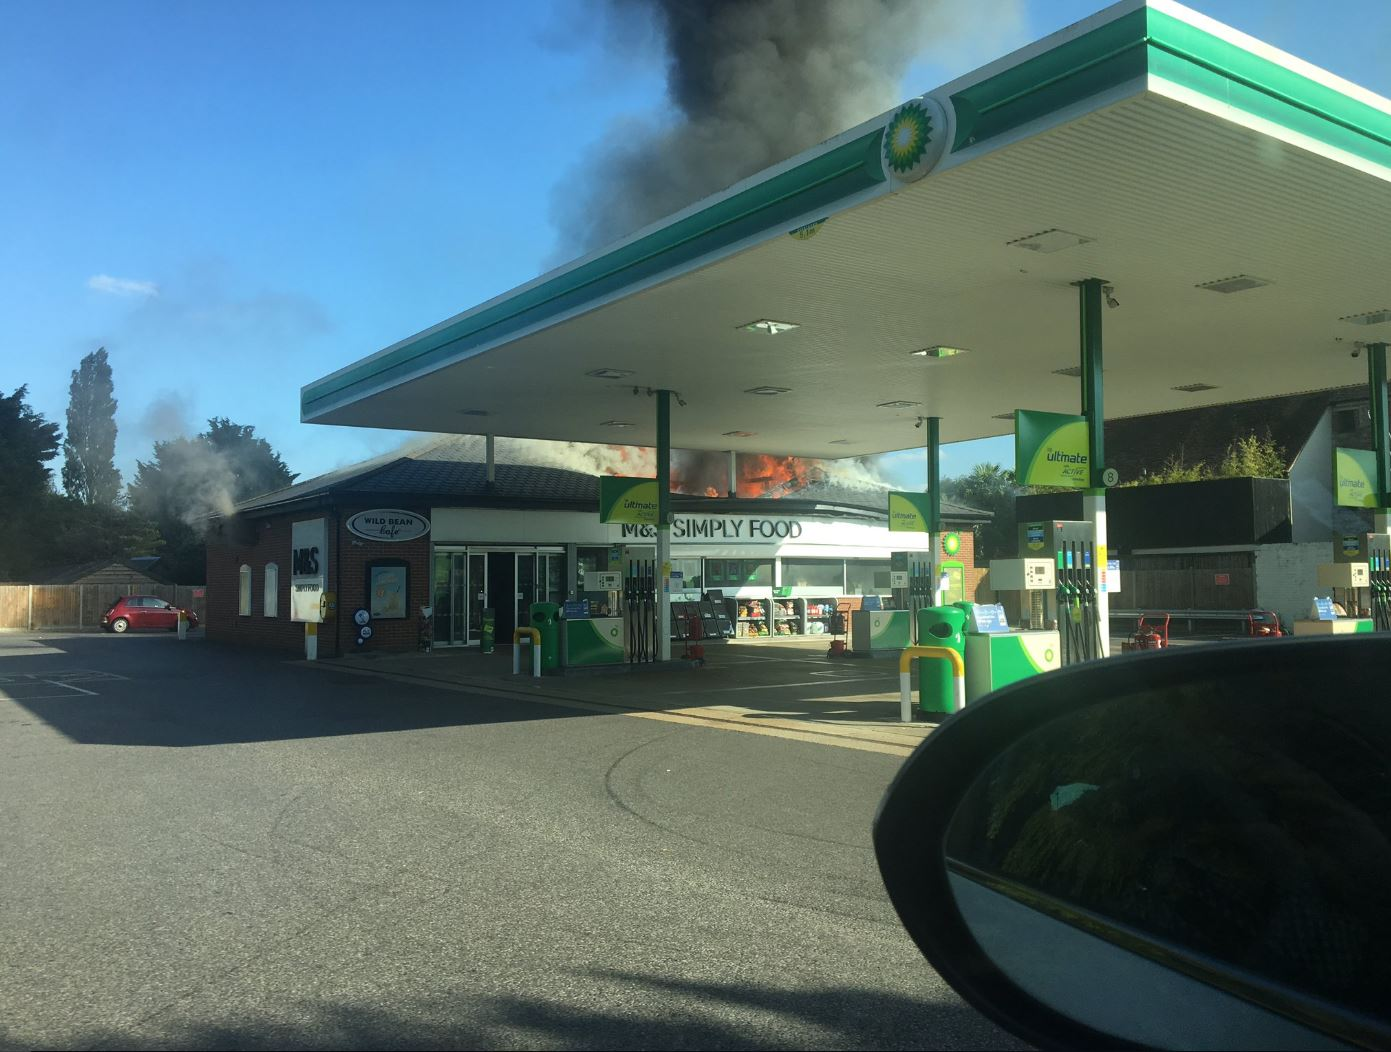 Stadhampton BP petrol station on fire: Traffic builds after road closed